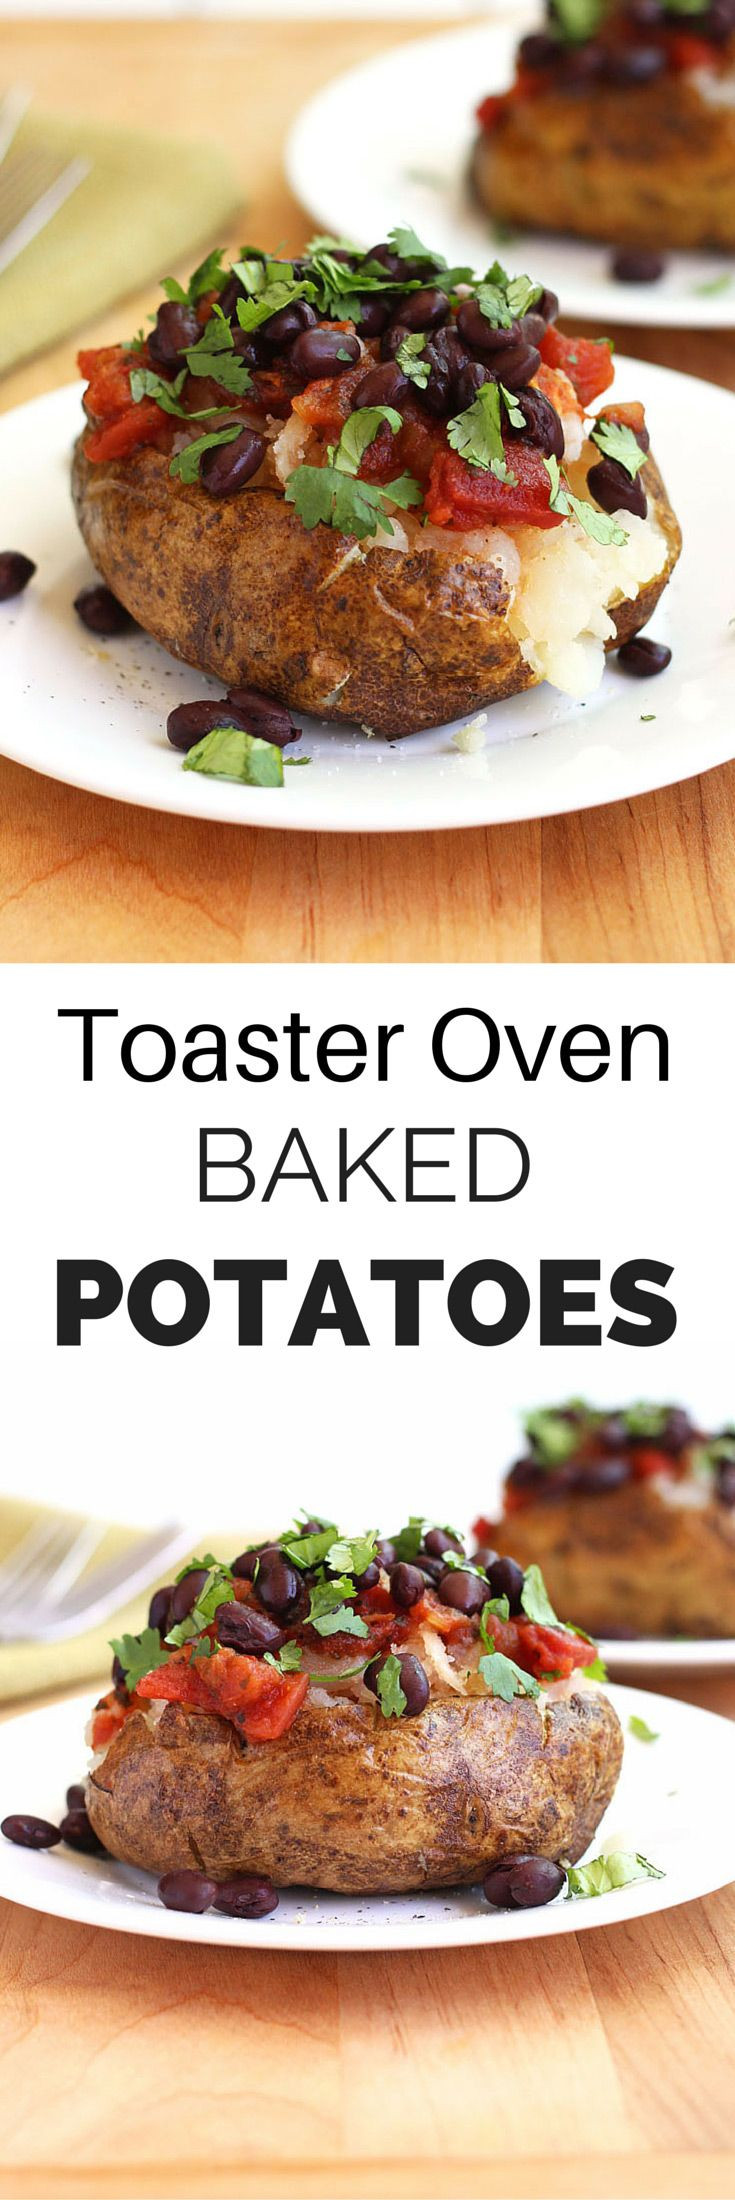 Baked Potato In Toaster Oven  How To Toaster Oven Baked Potatoes Recipe